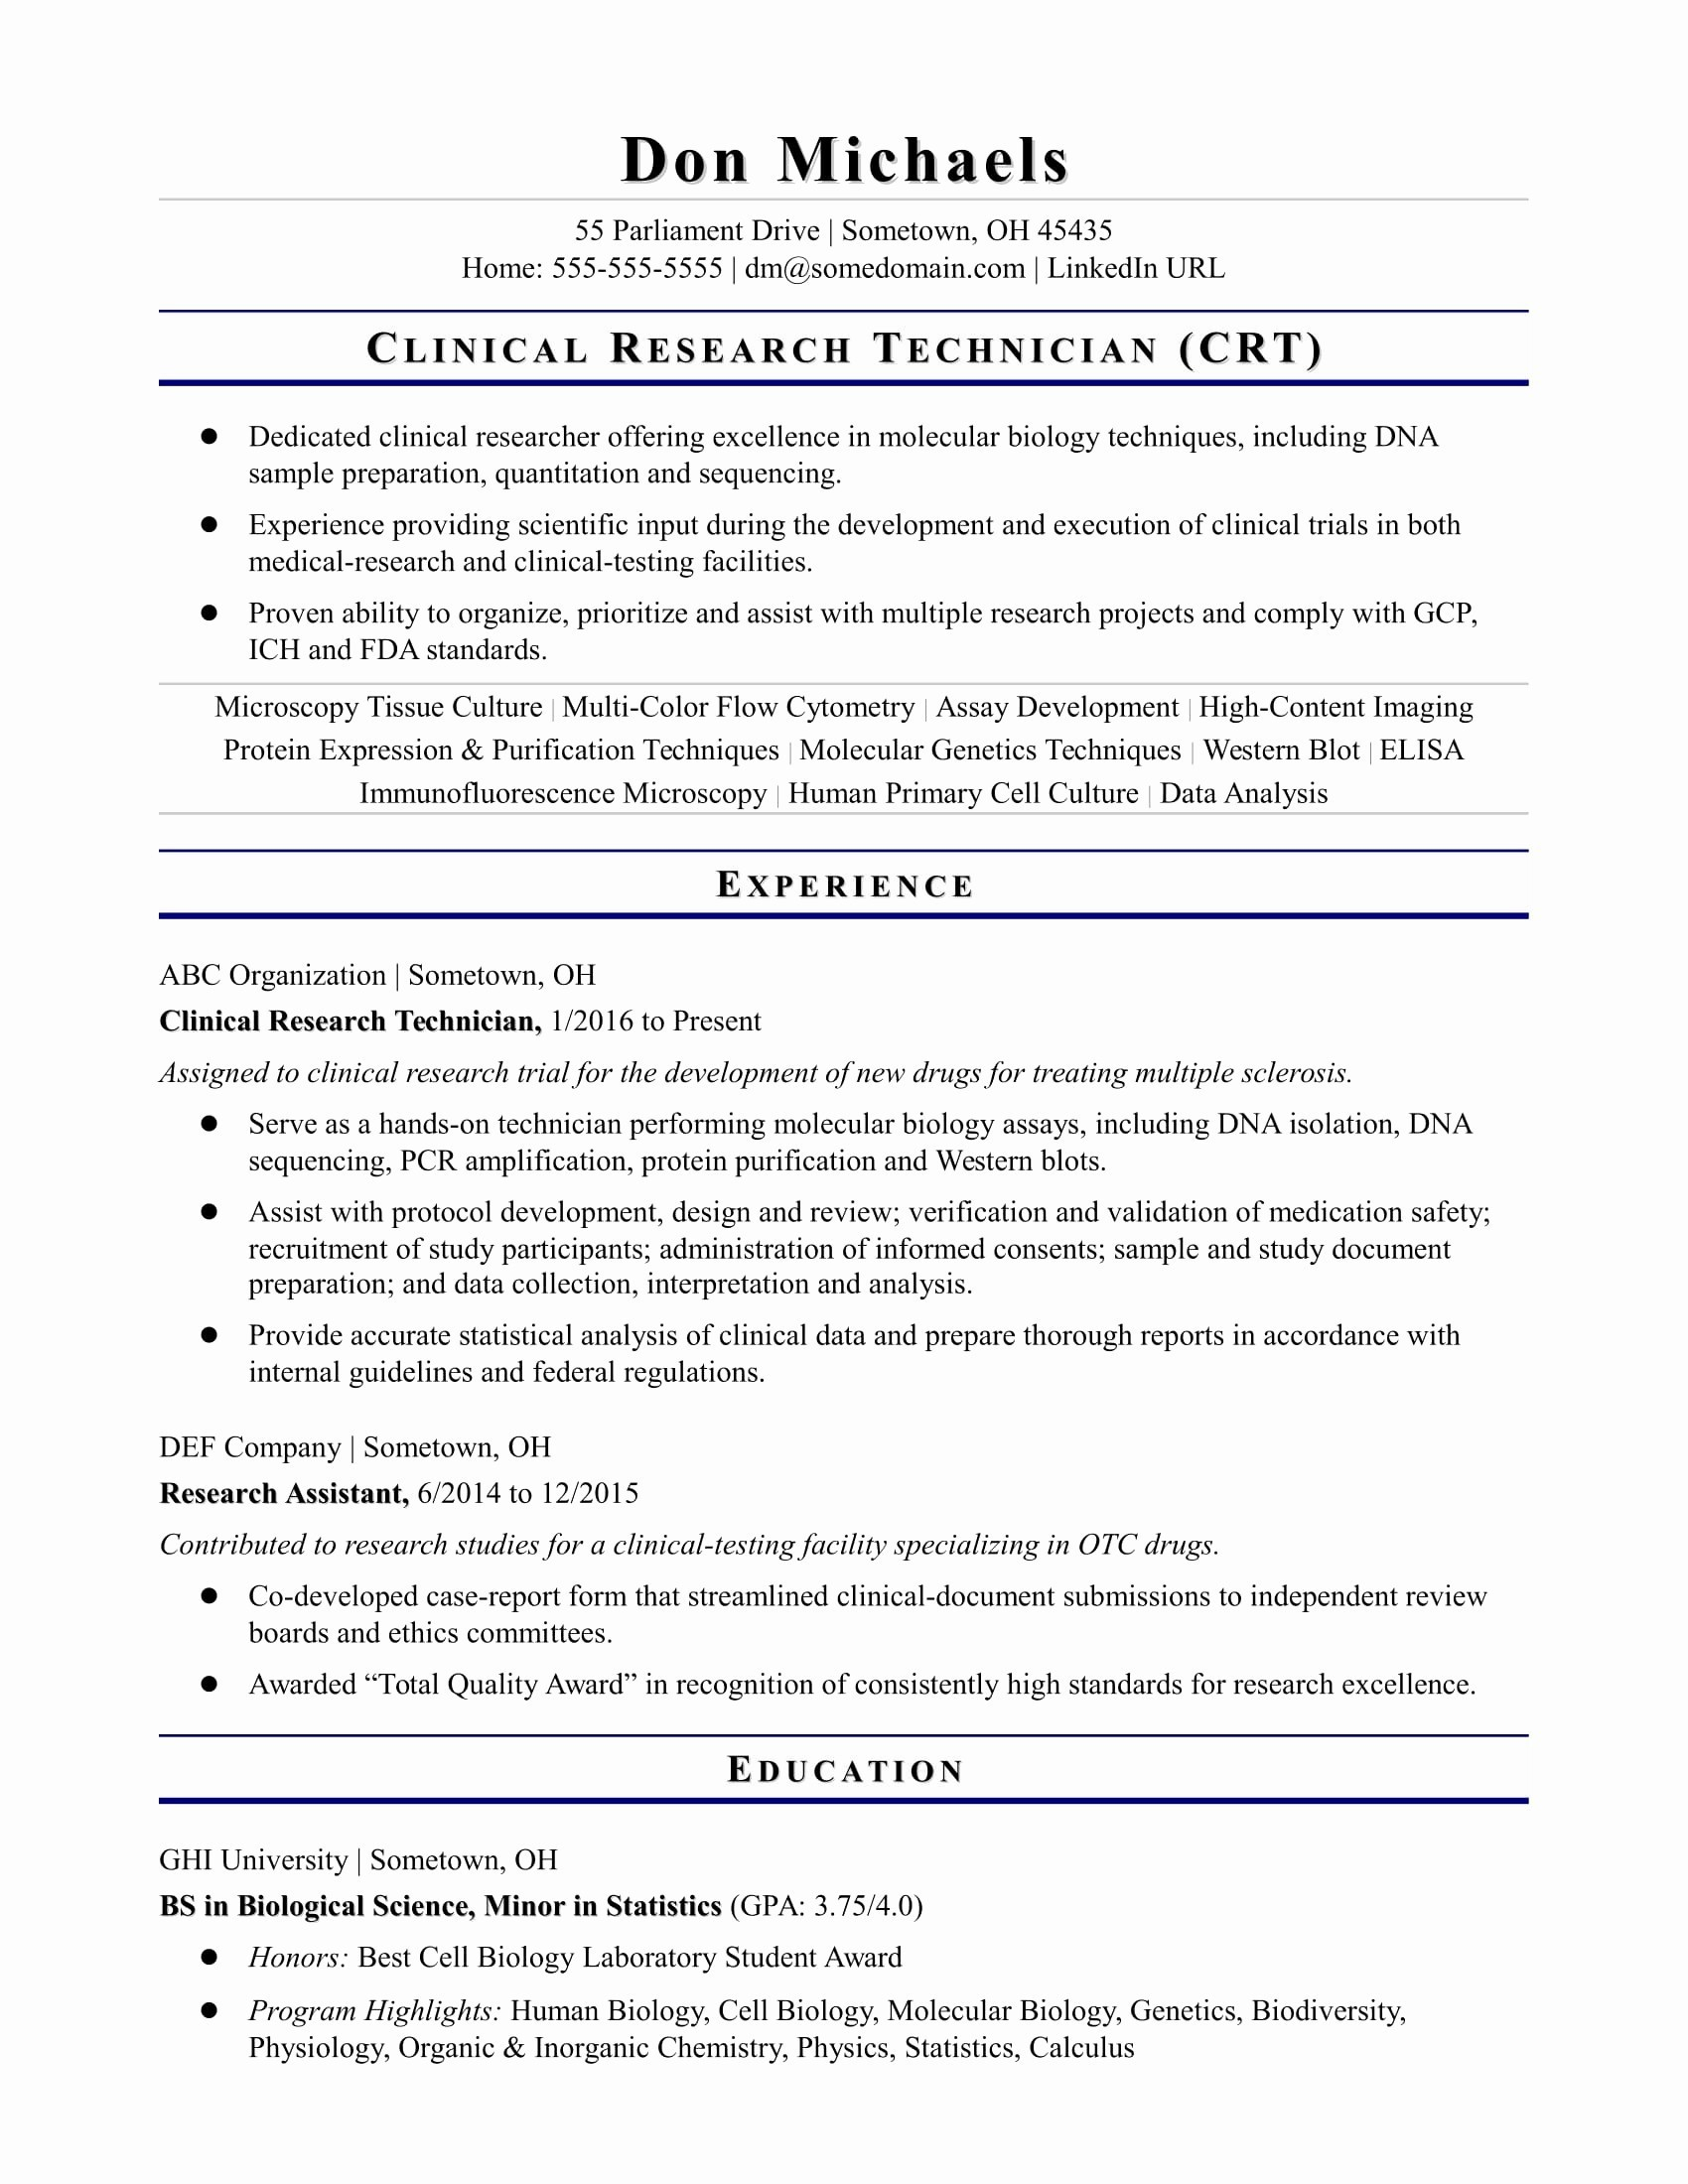 Scientist Resume - Lab Wallpapers Beautiful Objective Resume Examples Fresh Nursing